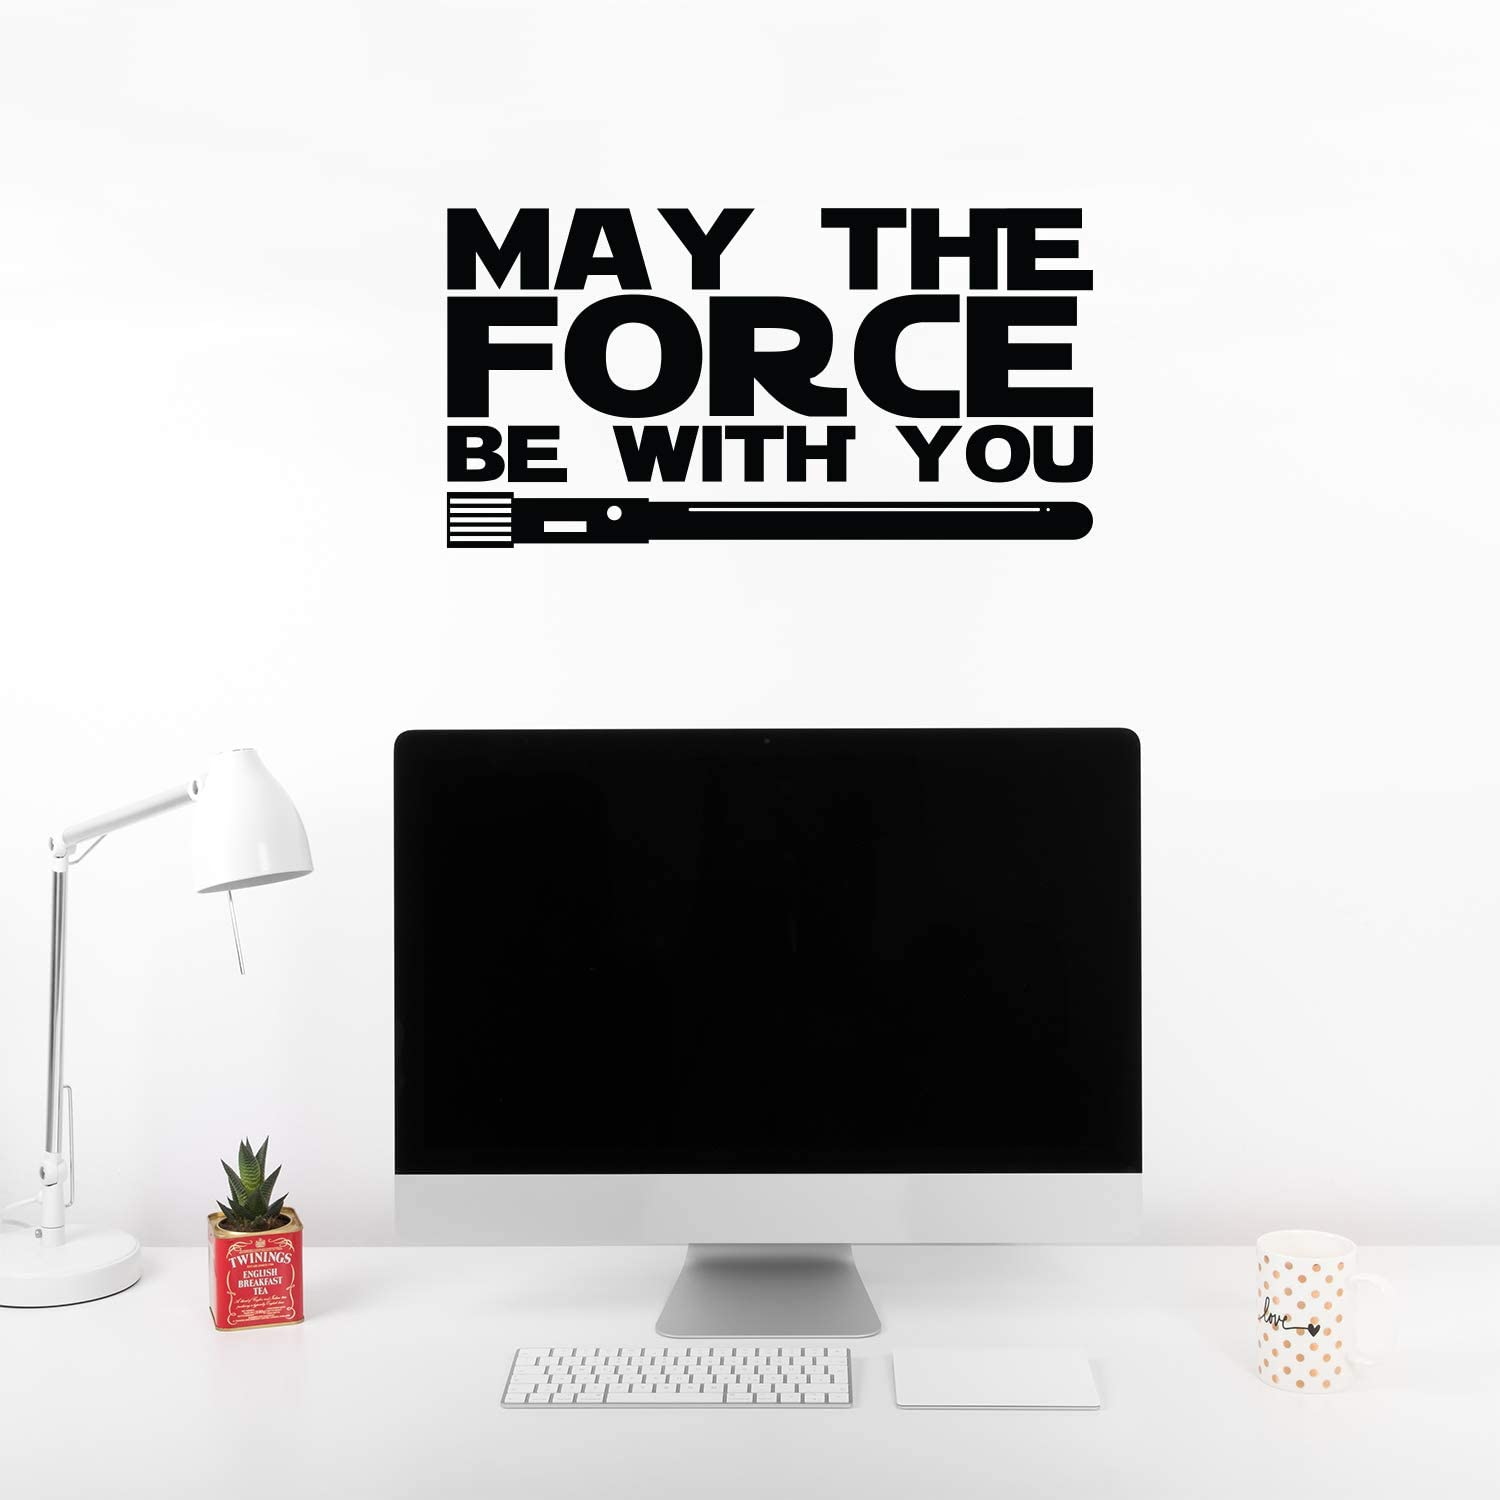 Vinyl Wall Art Decals - May The Force Be with You - 12